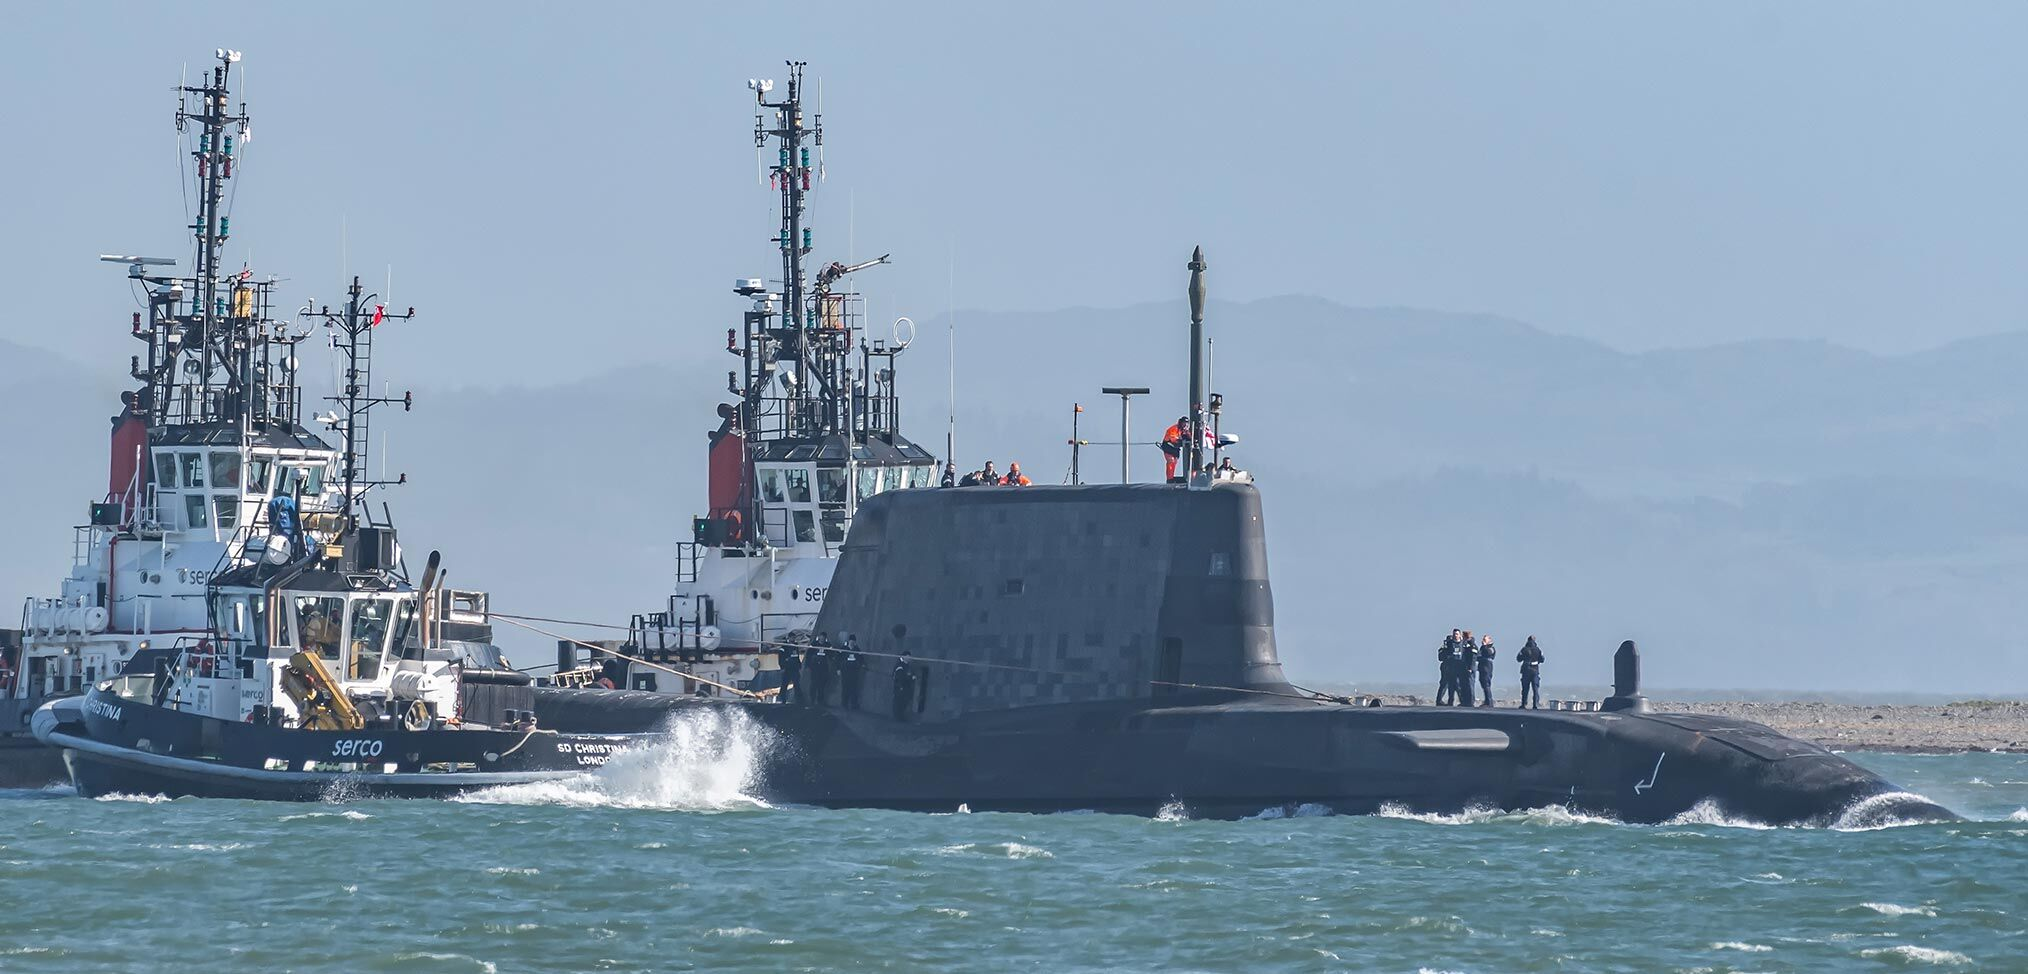 In pictures – Royal Navy submarine, HMS Audacious sails for the first time